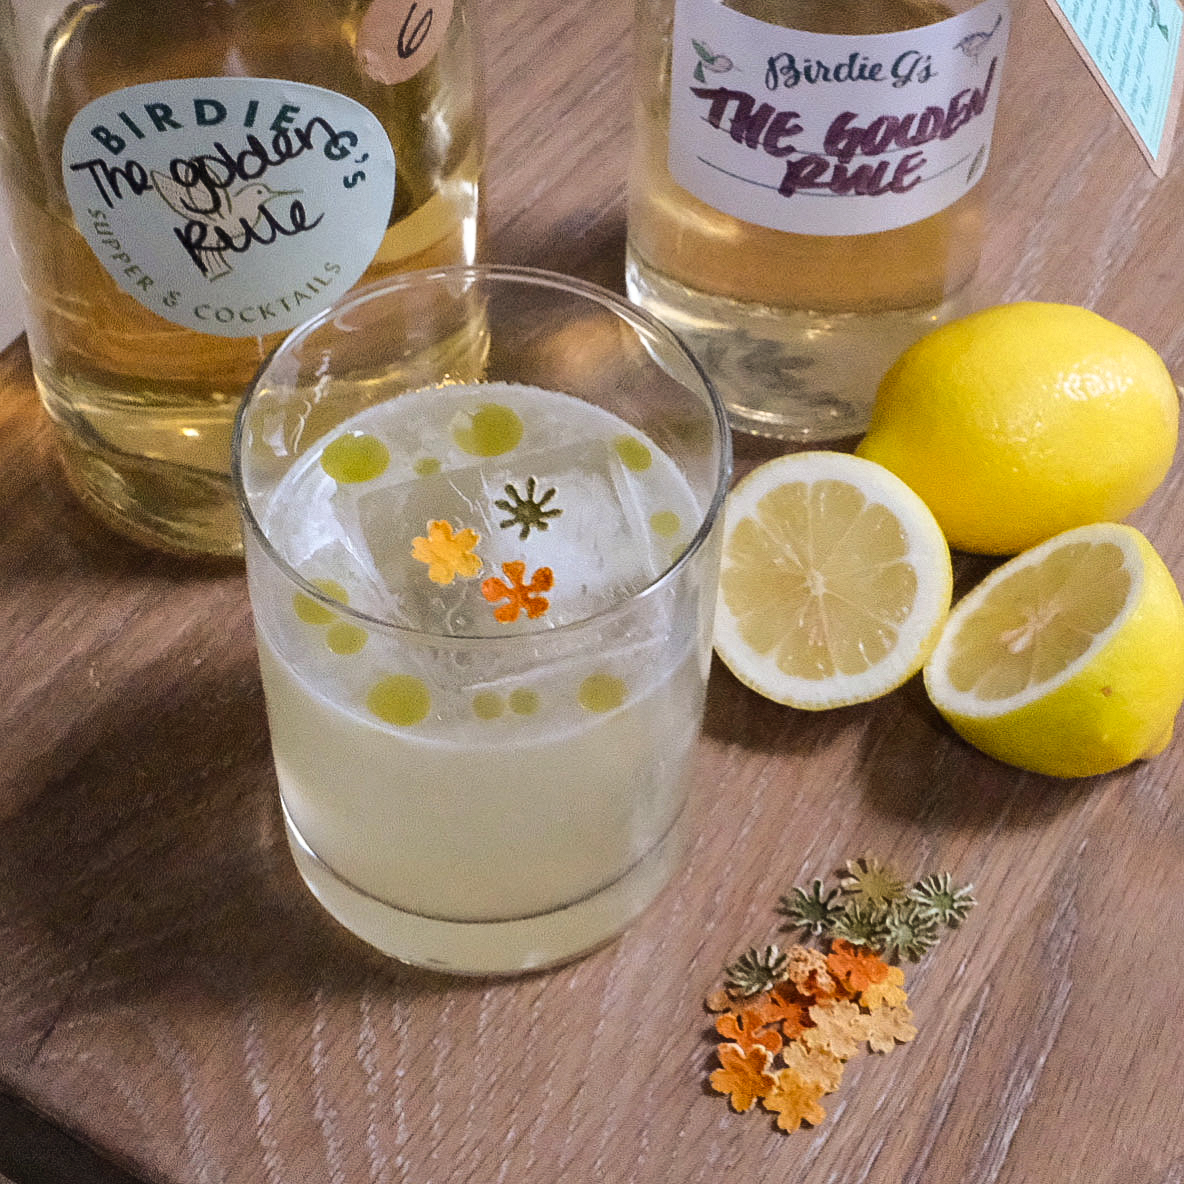 The Golden Rule Cocktail